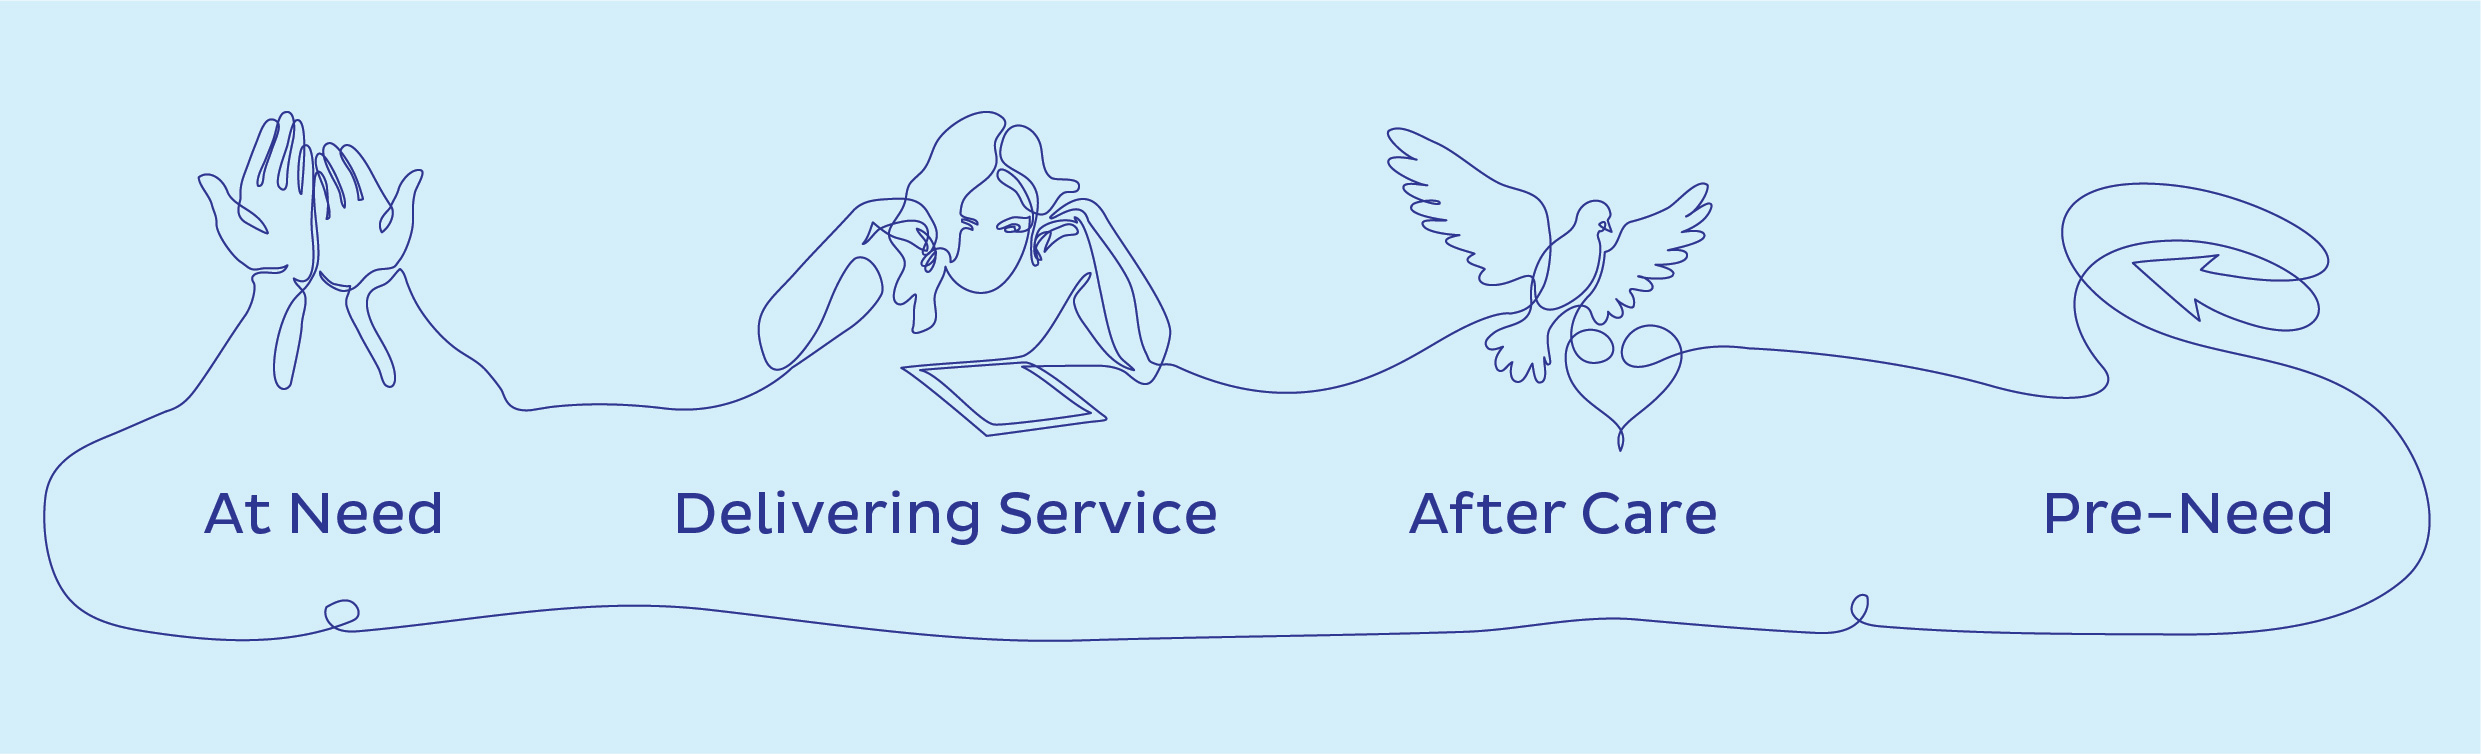 Grow your business: The Lifecycle of a Funeral Service Video